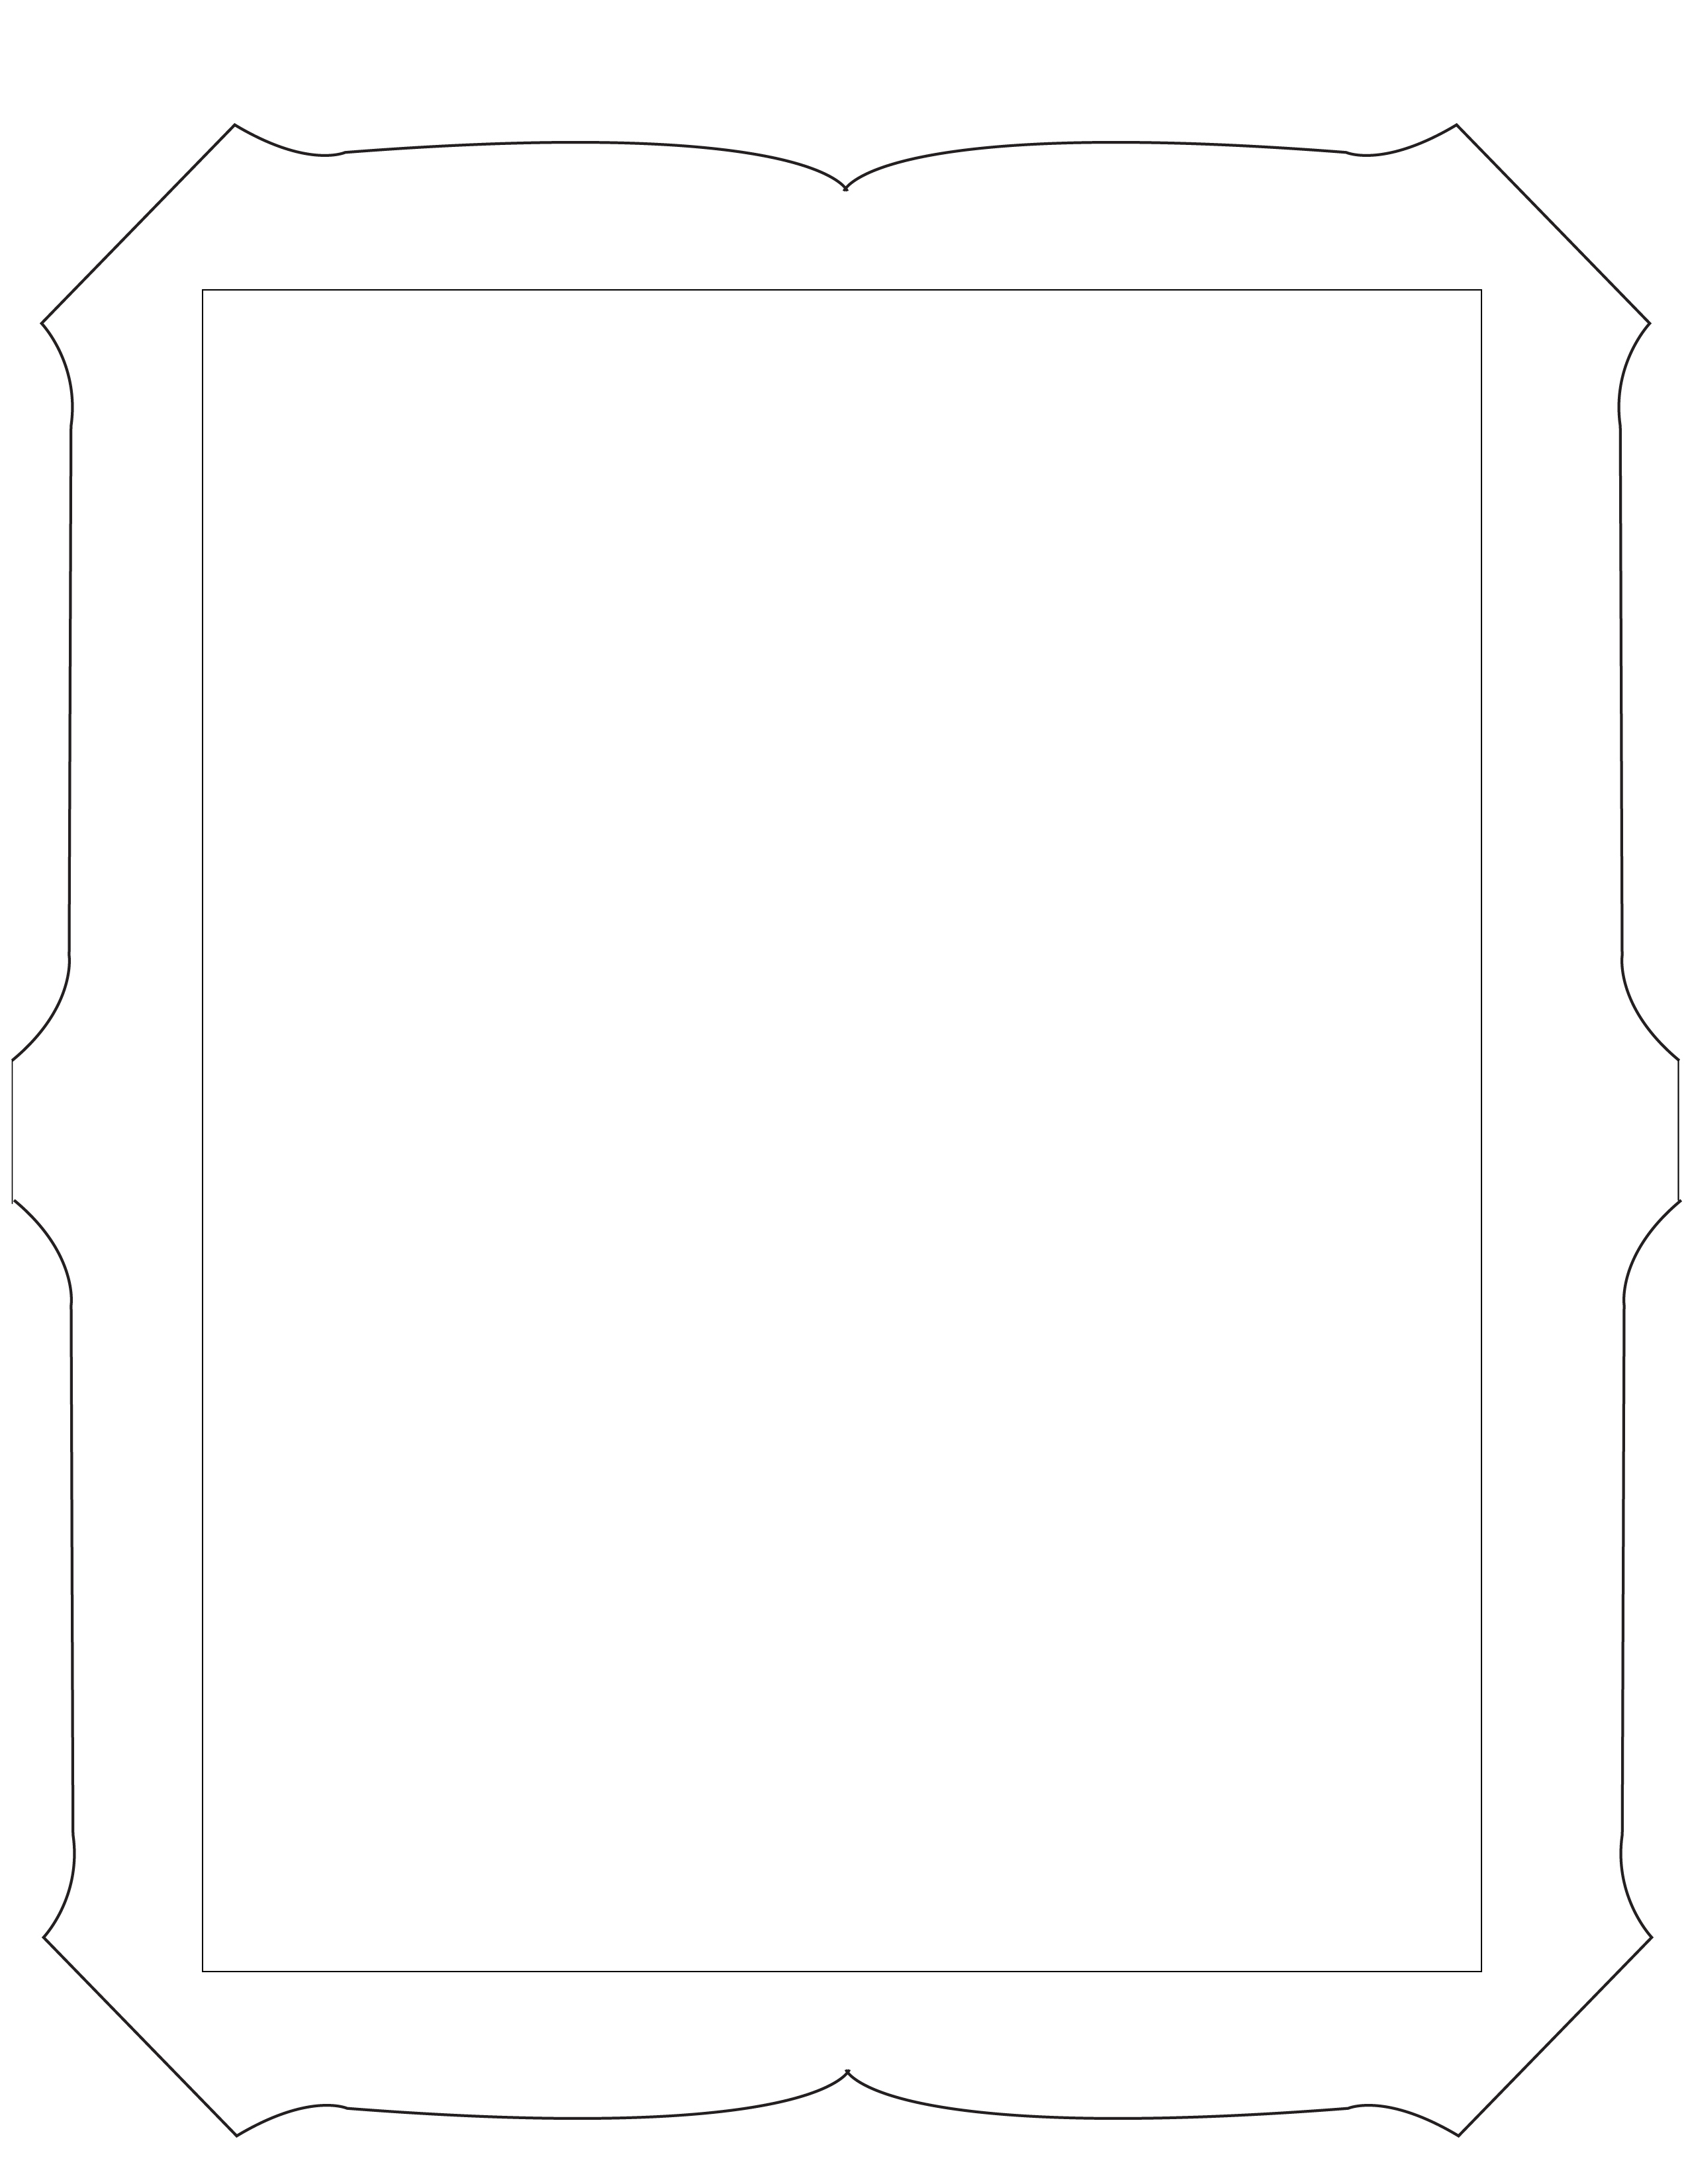 Template For Photo Frame. free psd template with various frames ...